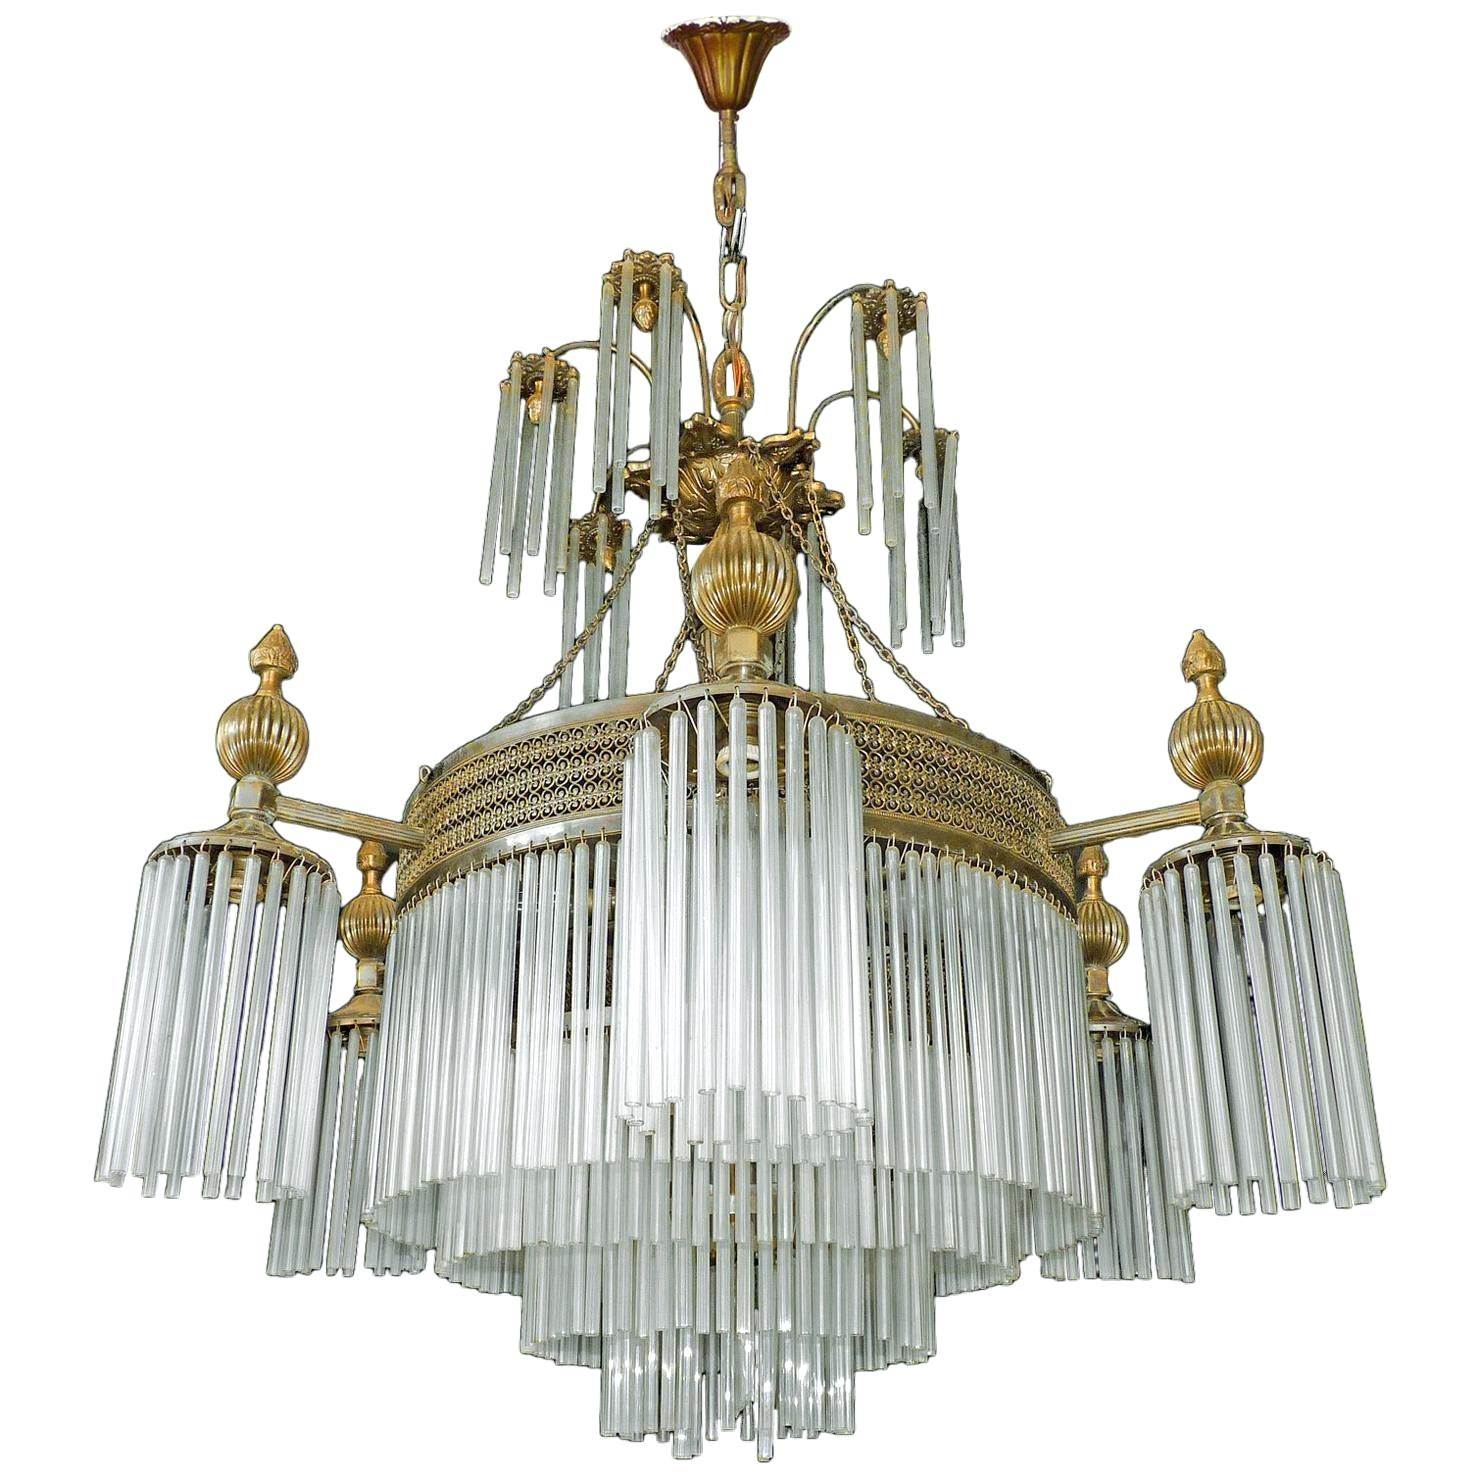 12 Light Chandelier With Vroman 12 Light Sputnik Chandeliers (View 21 of 30)